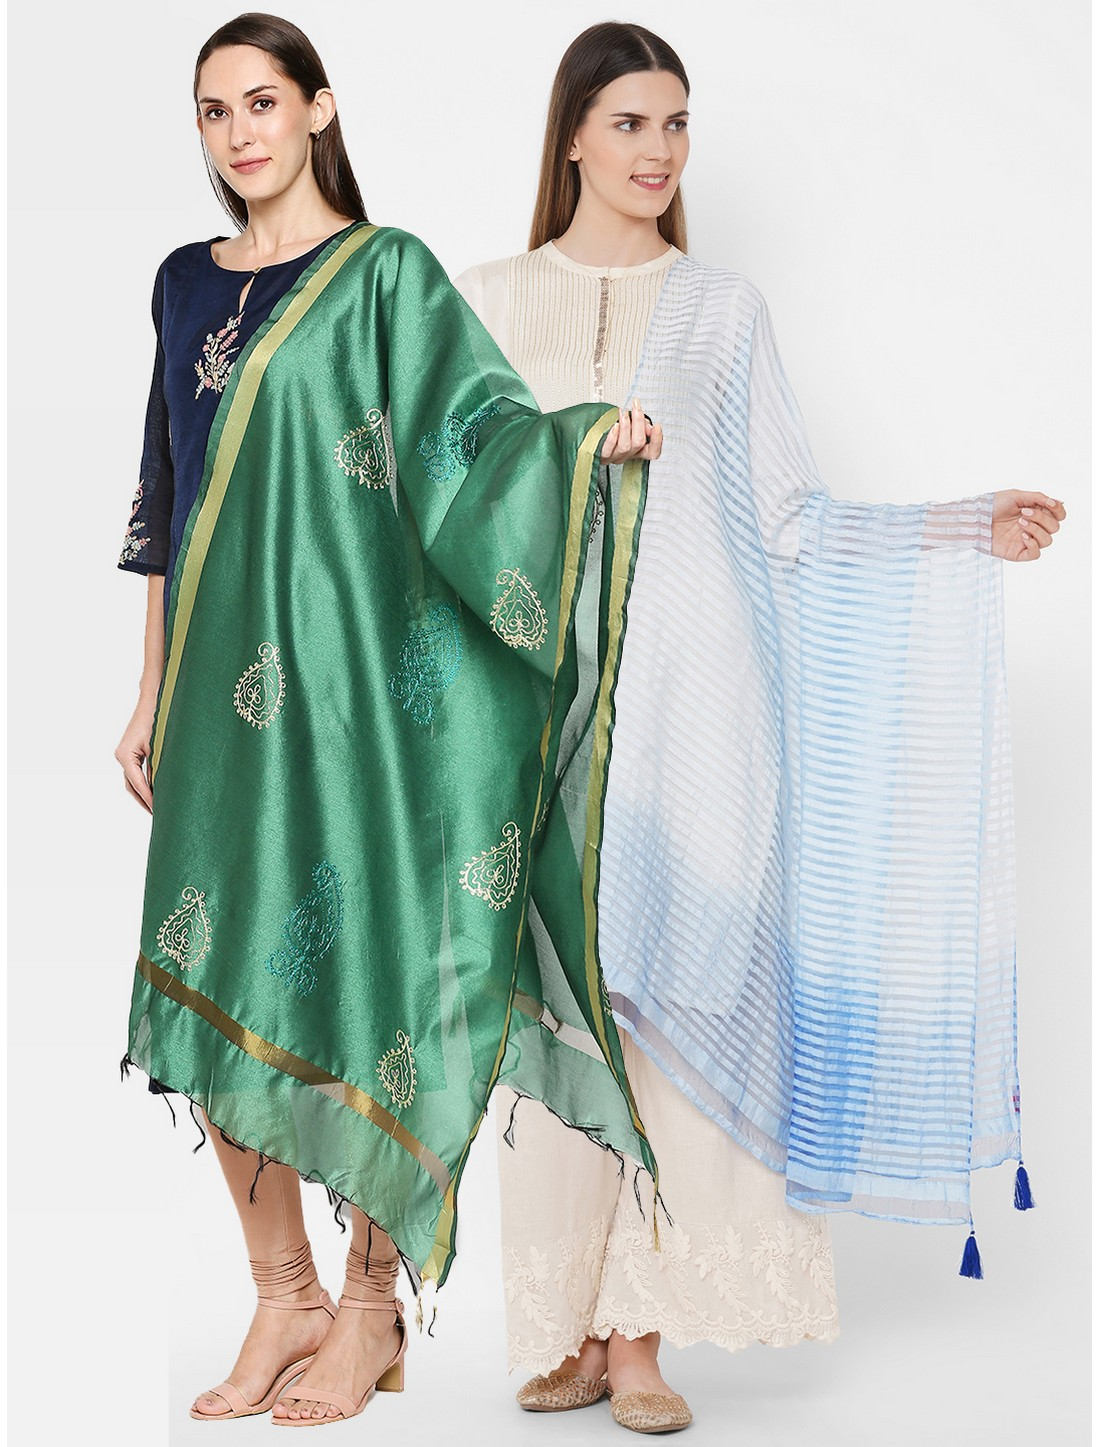 Get Wrapped | Get Wrapped Gold Border Dupatta & a Textured Shaded Dupatta for Women - Combo Pack of 2